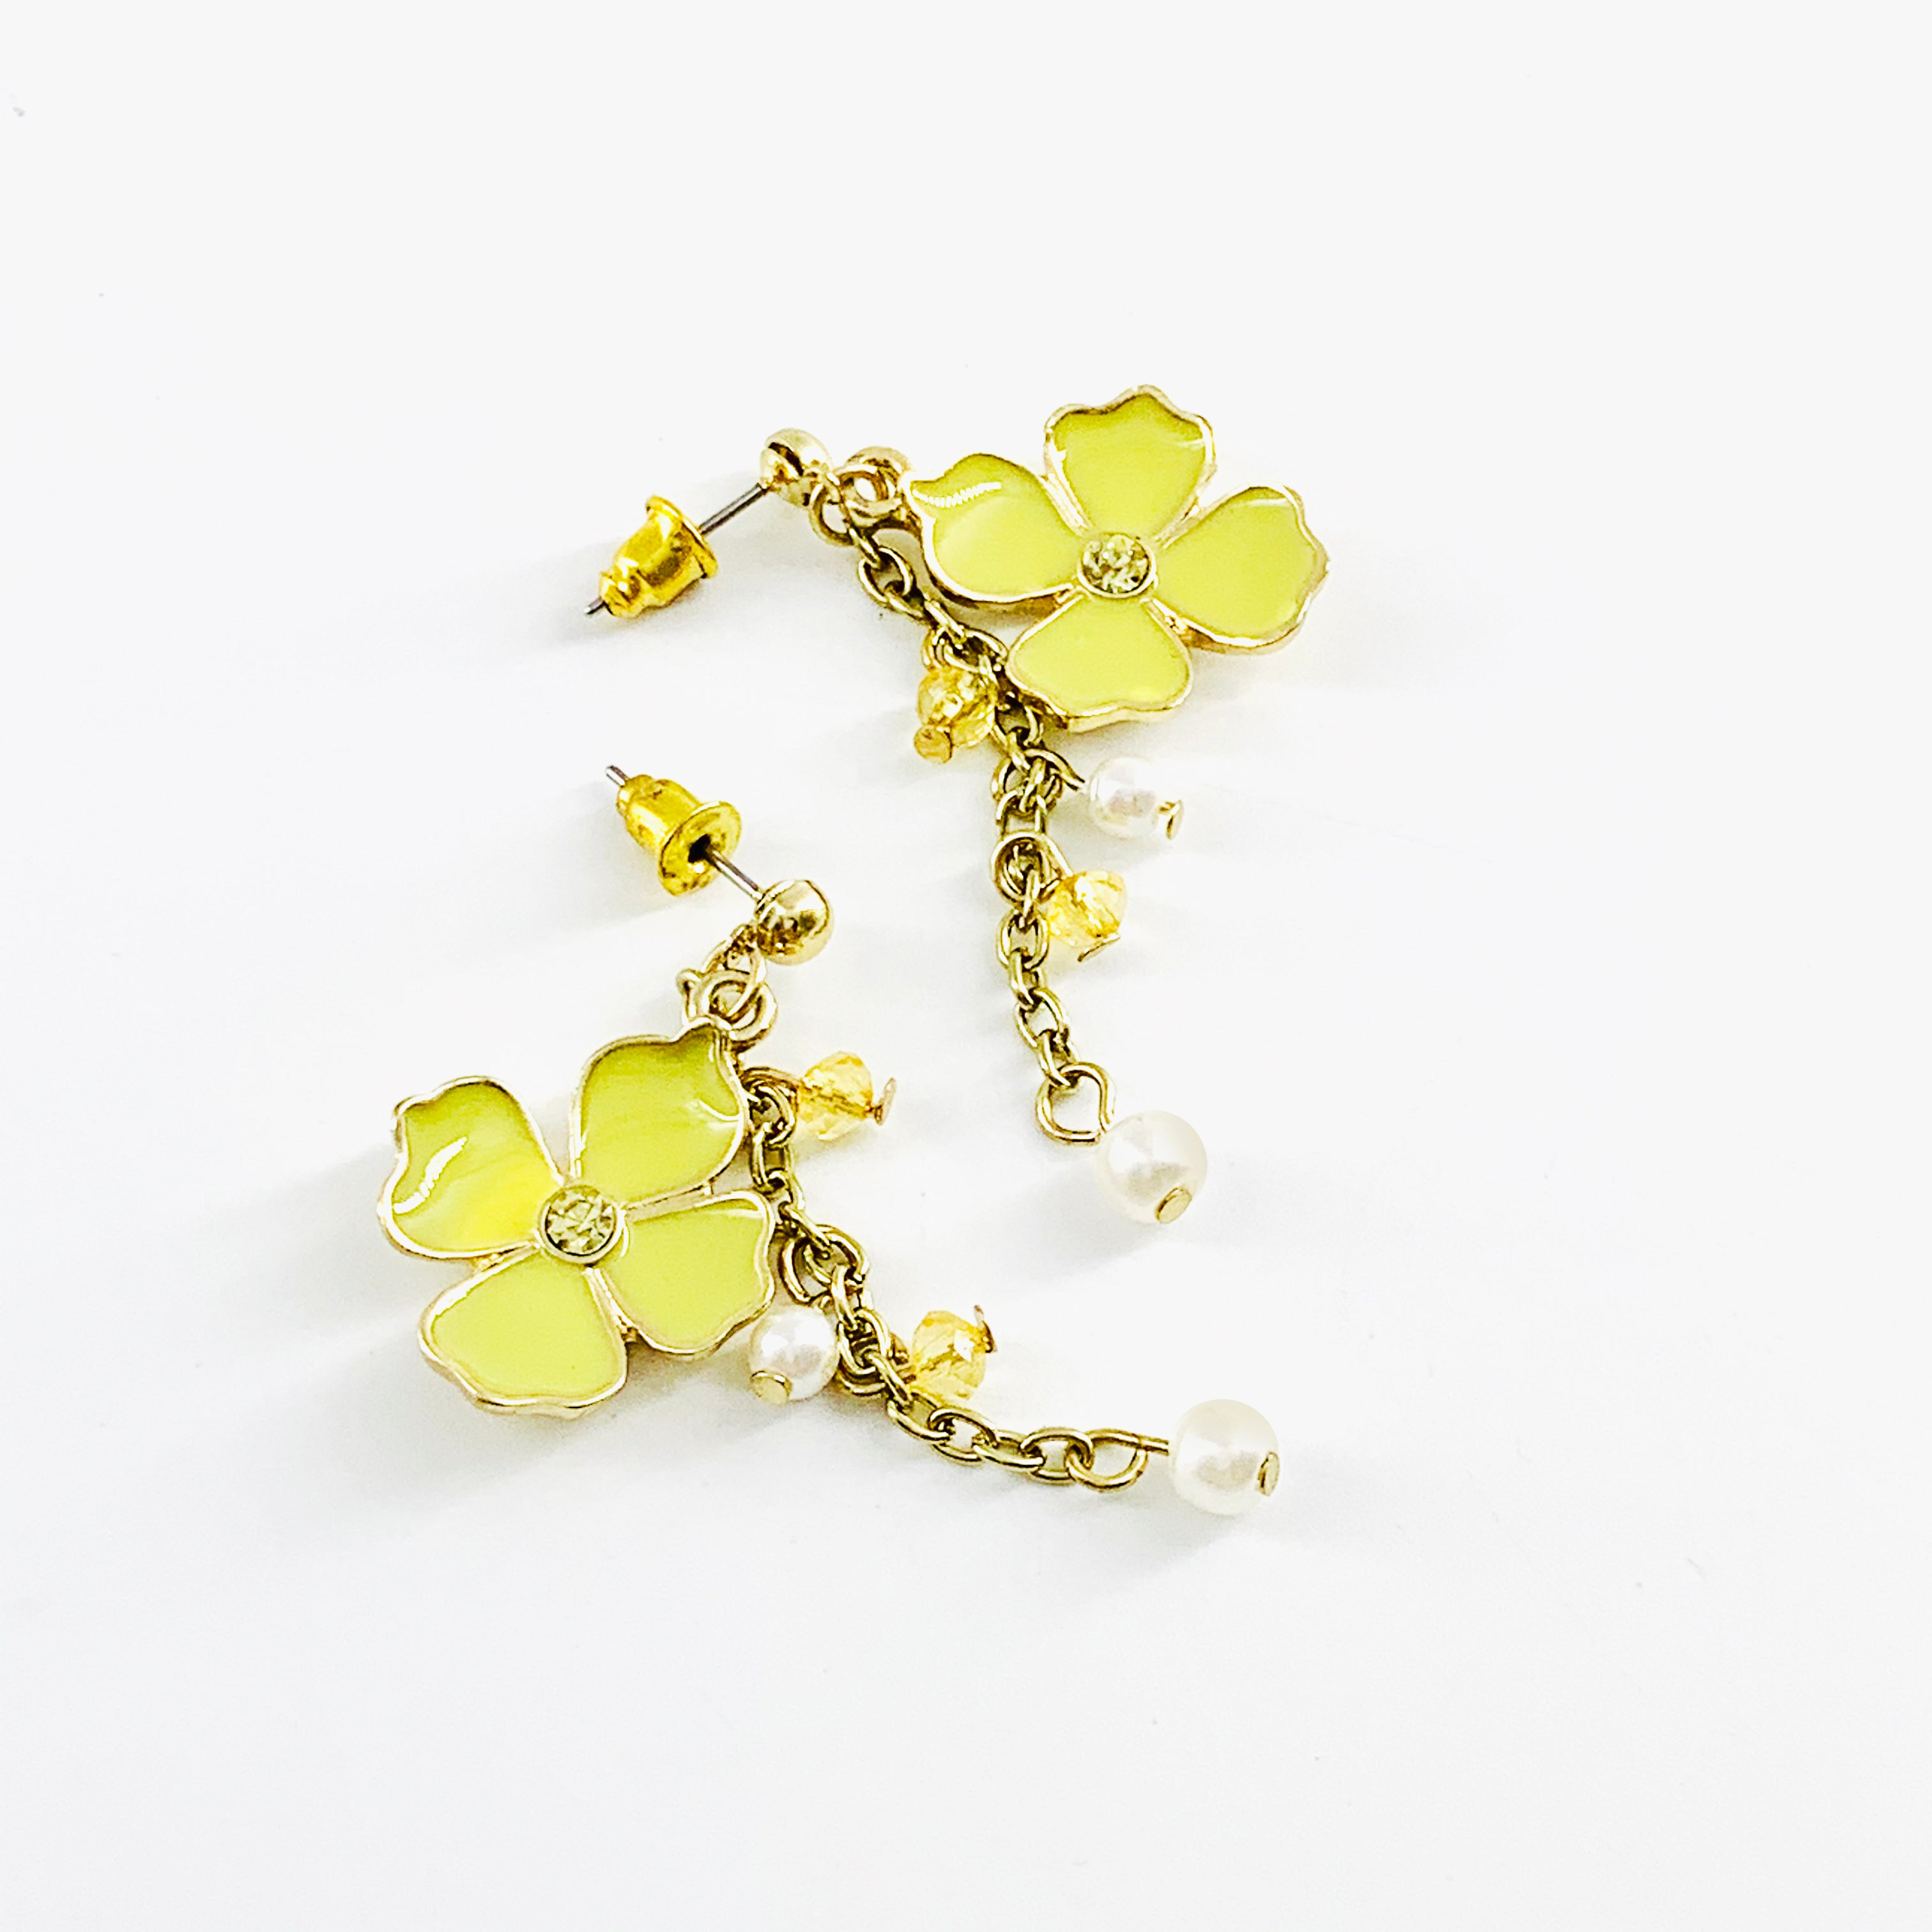 Enamel painted yellow flower with beads